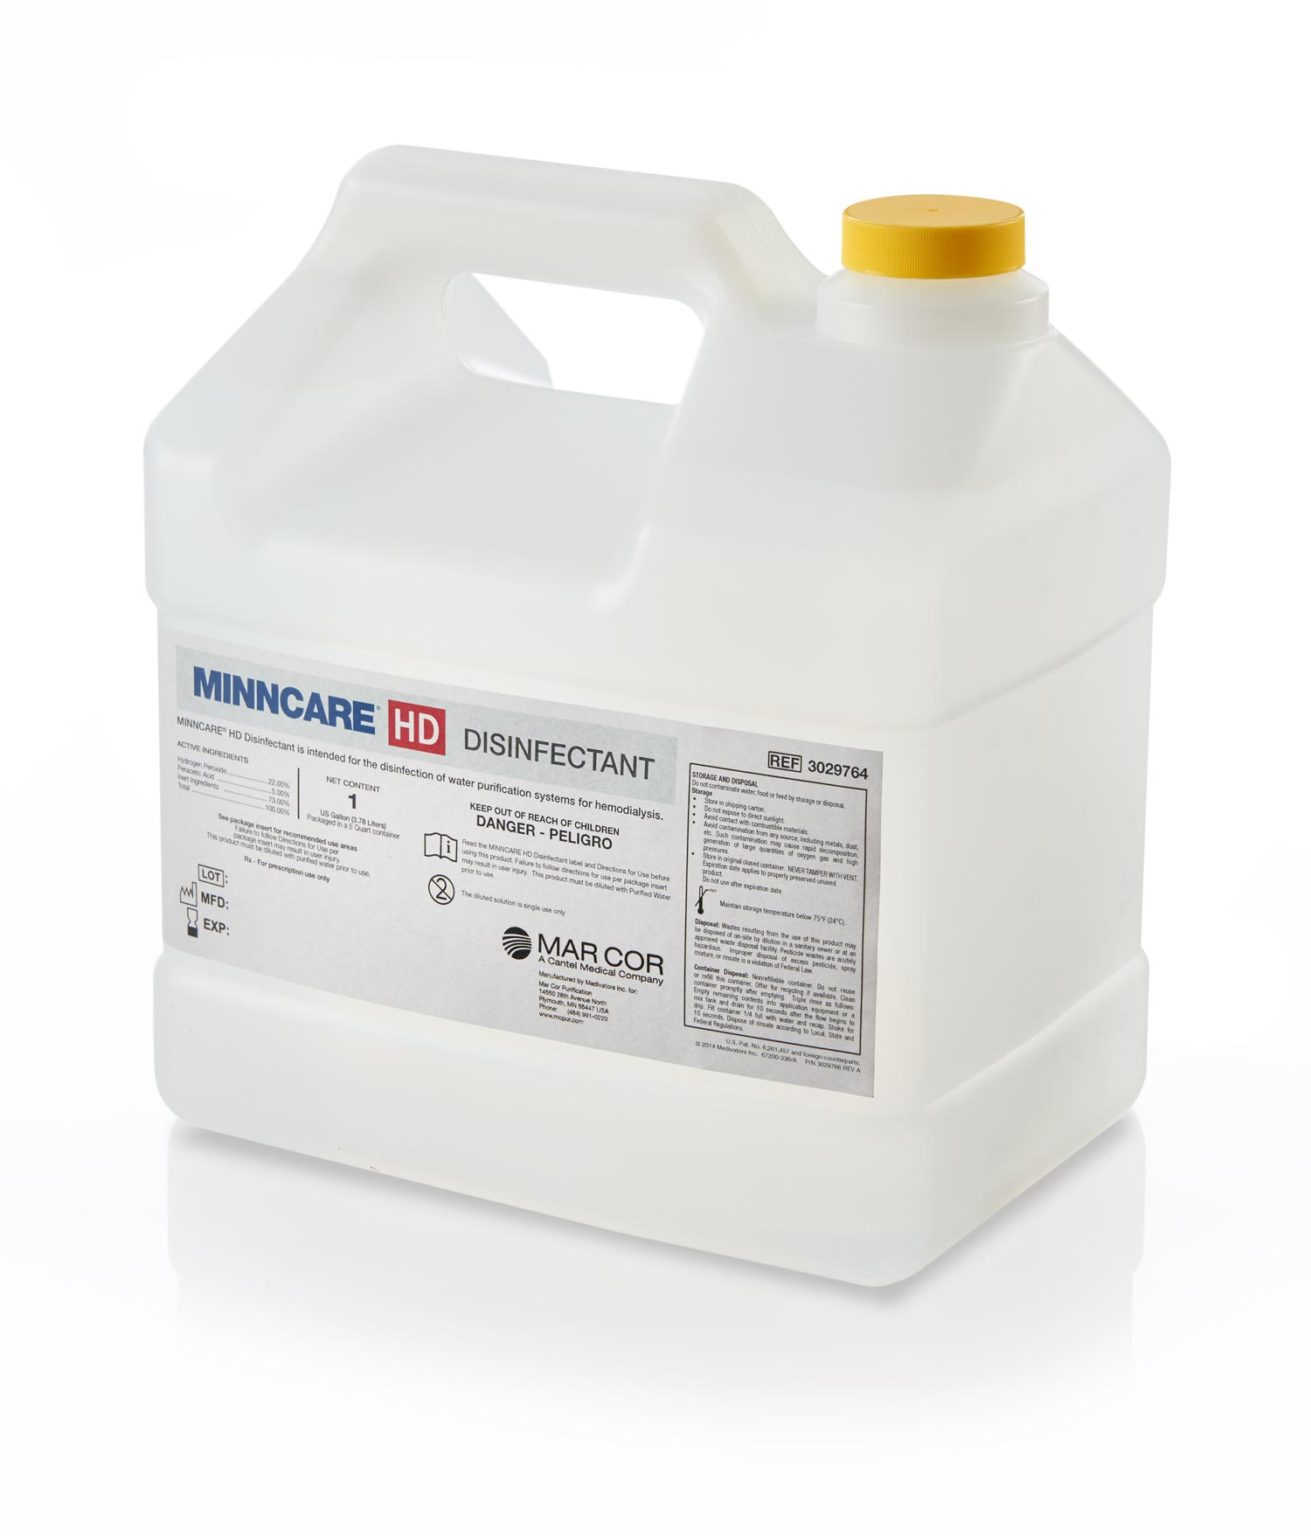 Bottle of Minncare-HD Water System Disinfectant